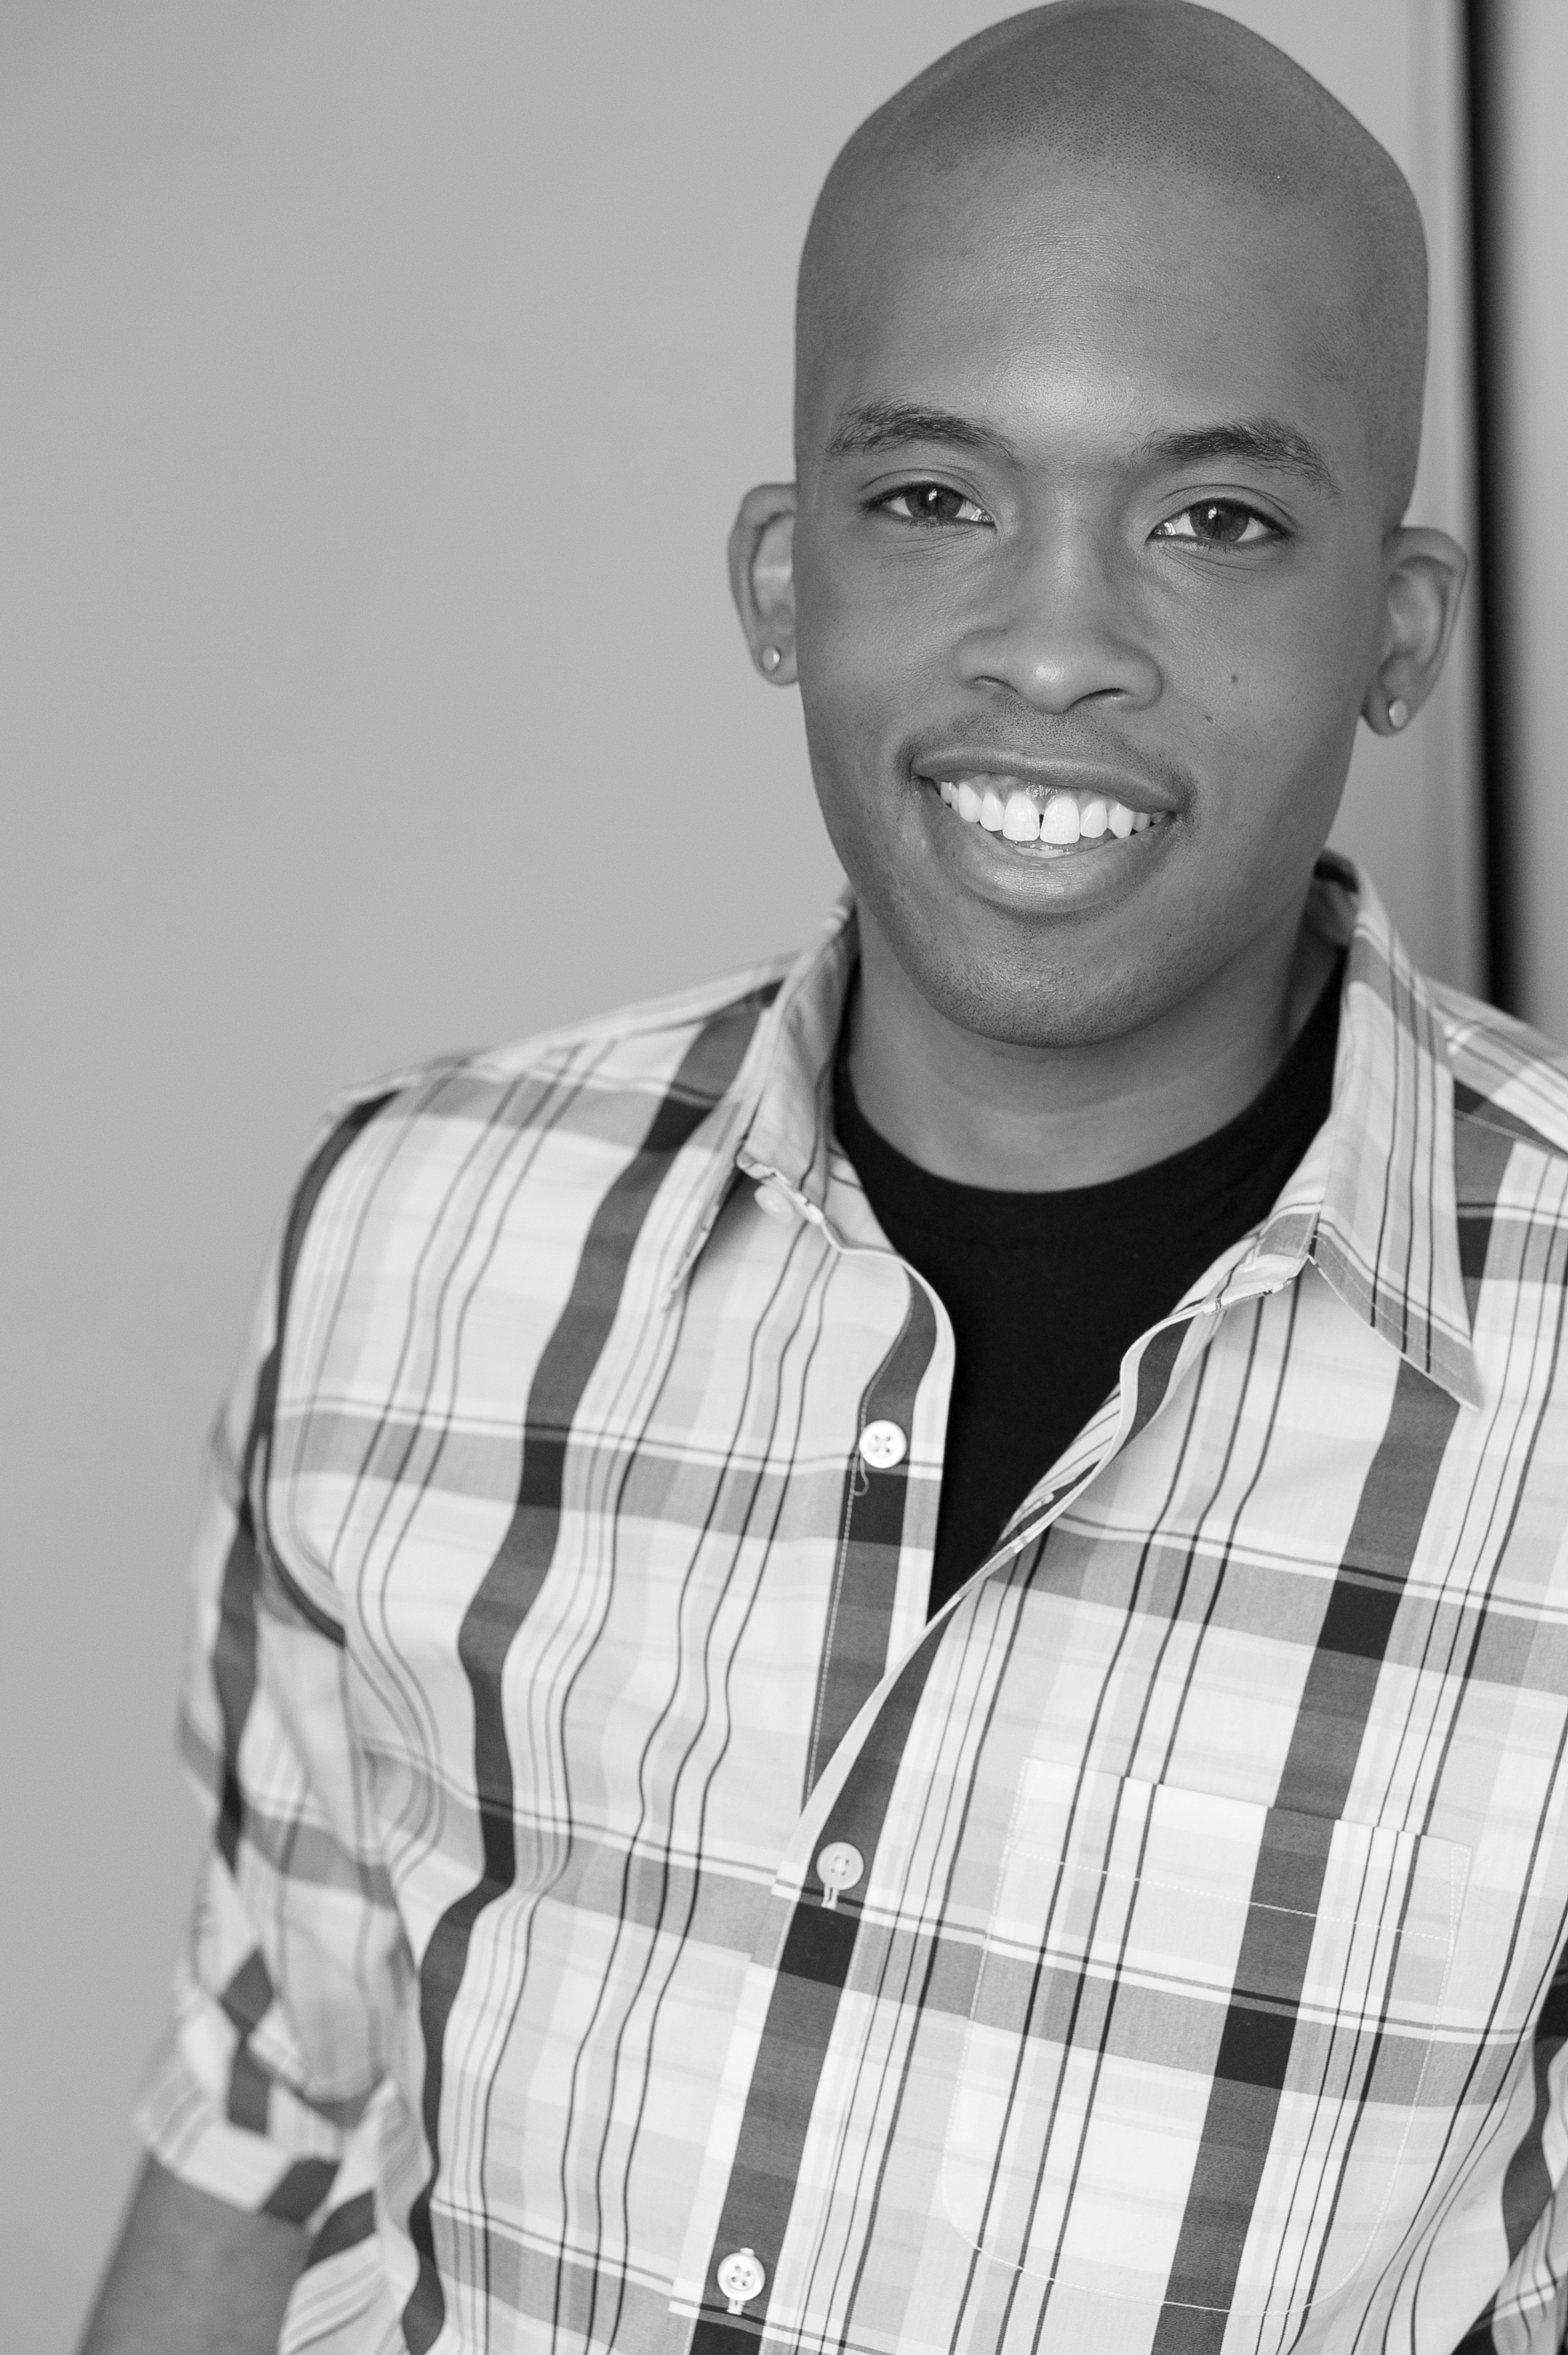 Kyle G. Stephens headshot (Shrek)